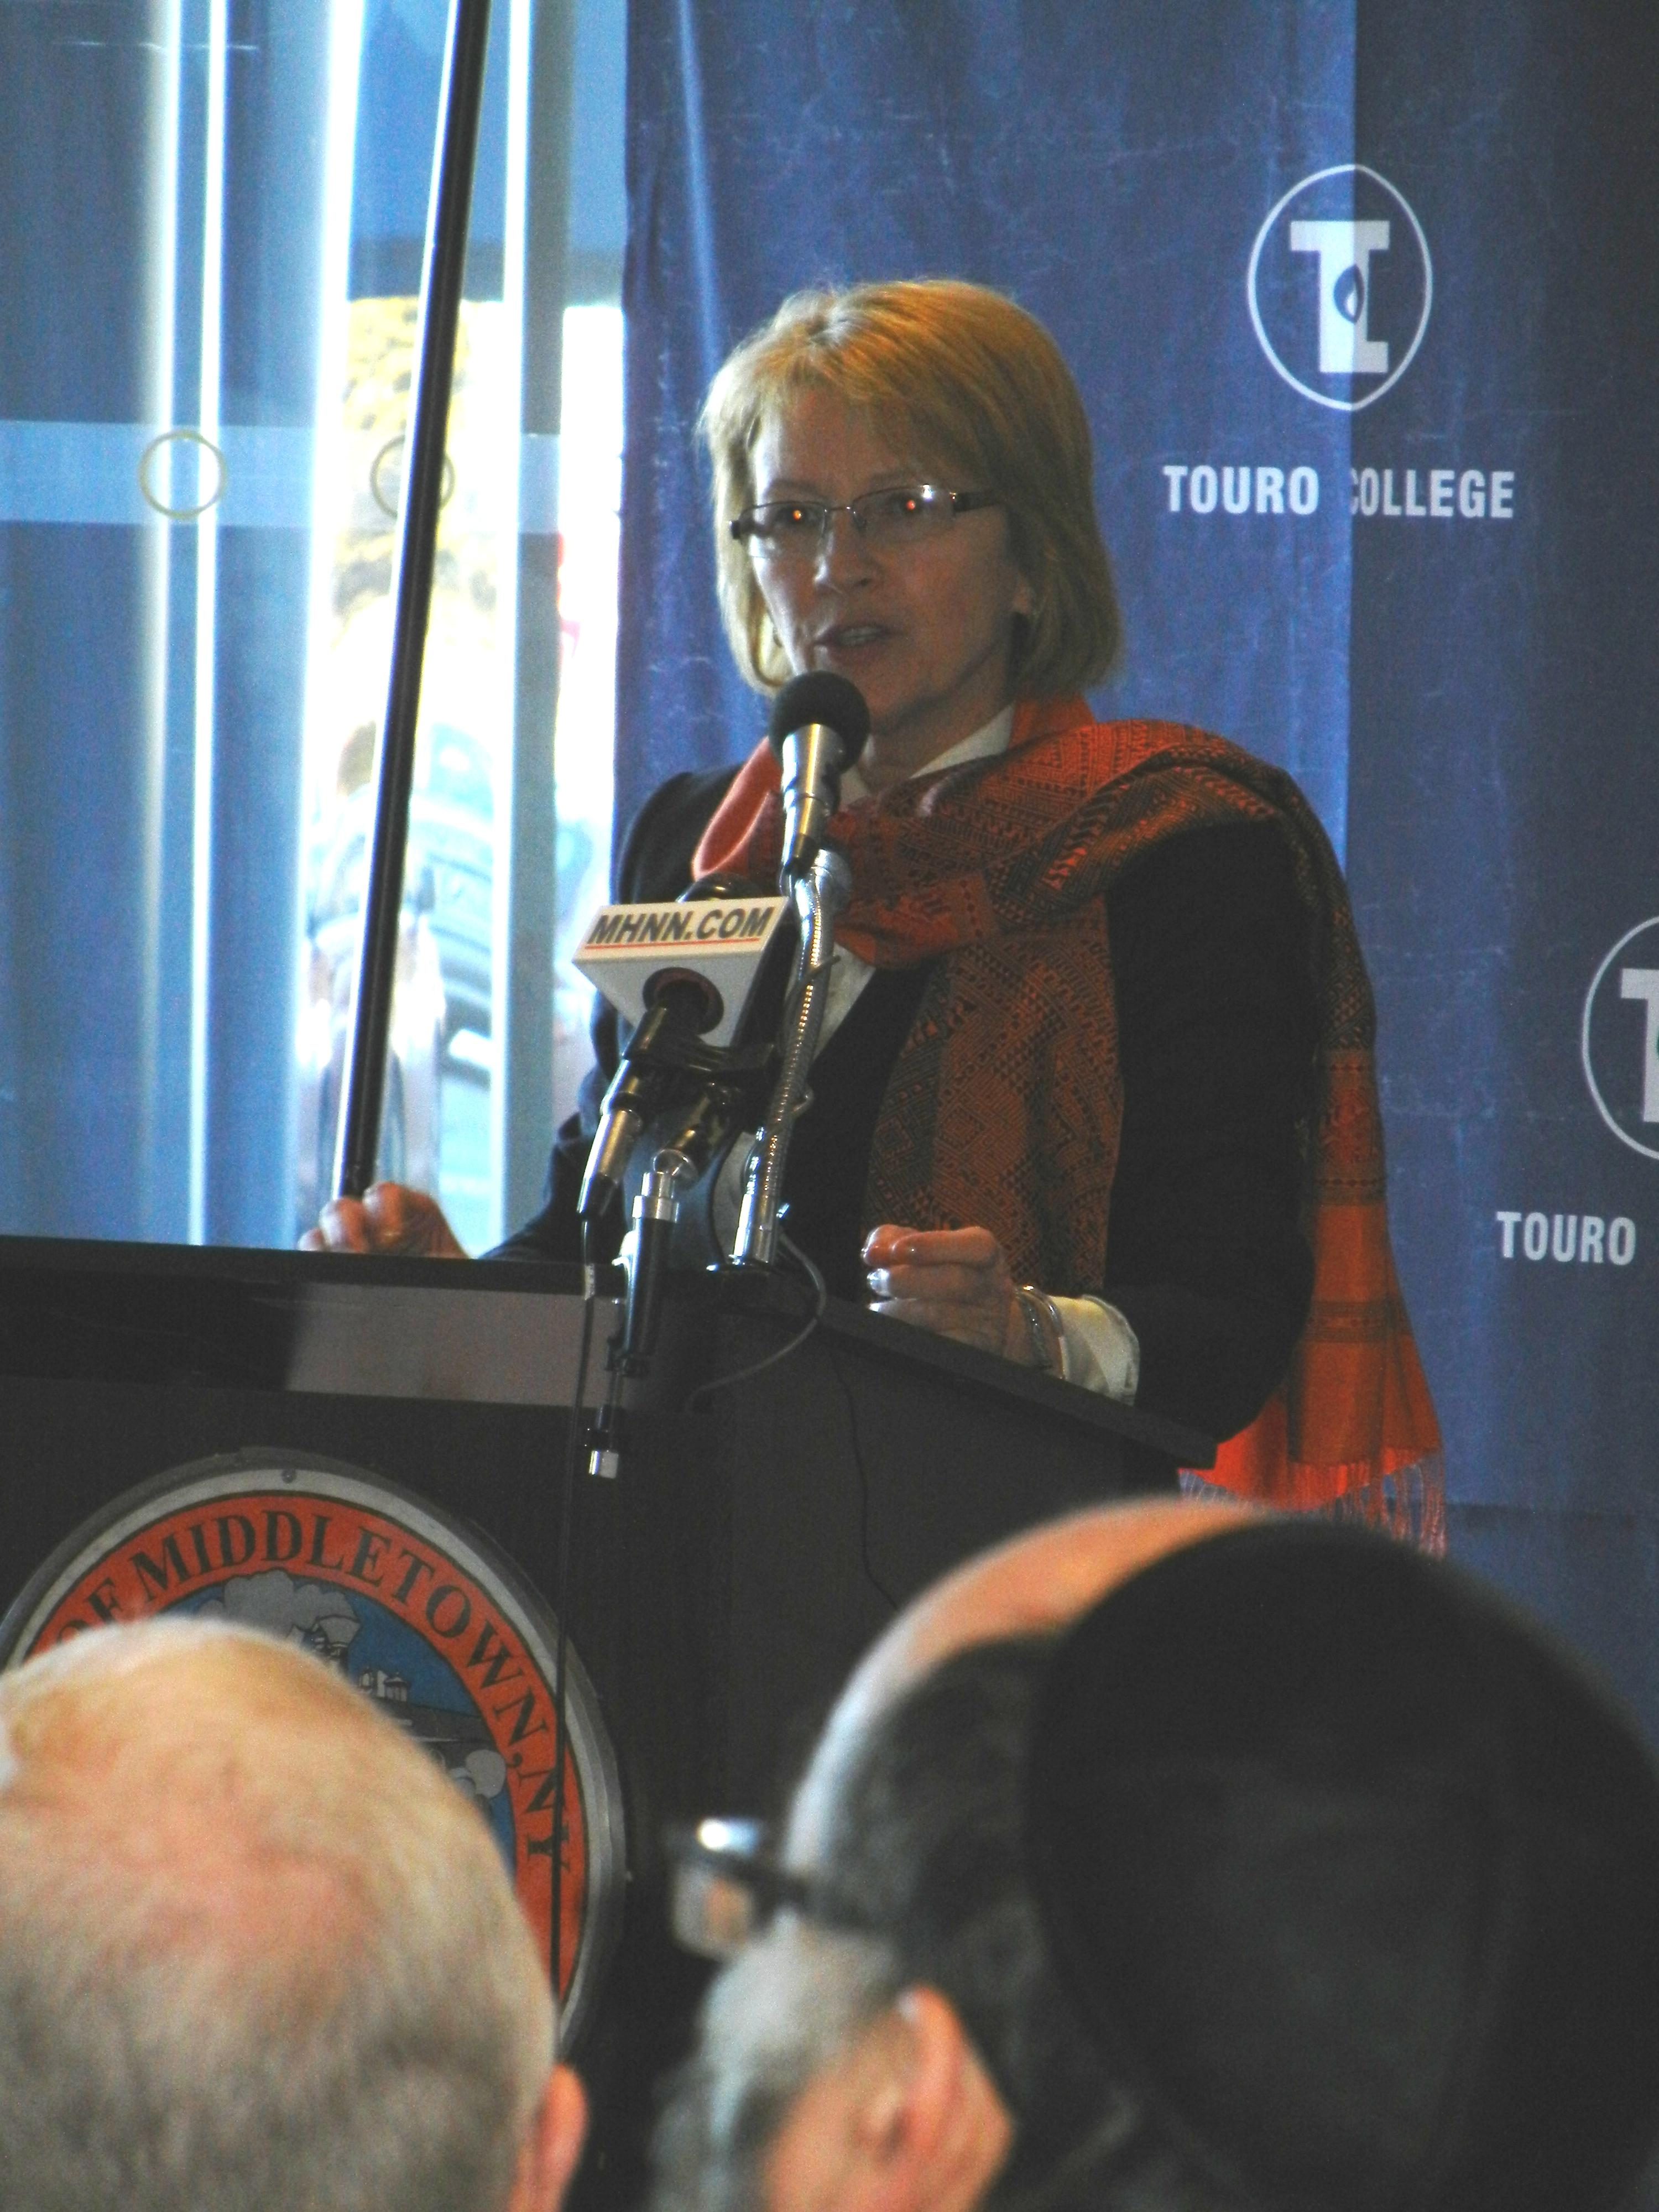 Aileen spoke at the announcement of Touro Medical College of Osteopathic Medicine.  The College is slated to open at the campus of the former Horton Hospital in Middletown.